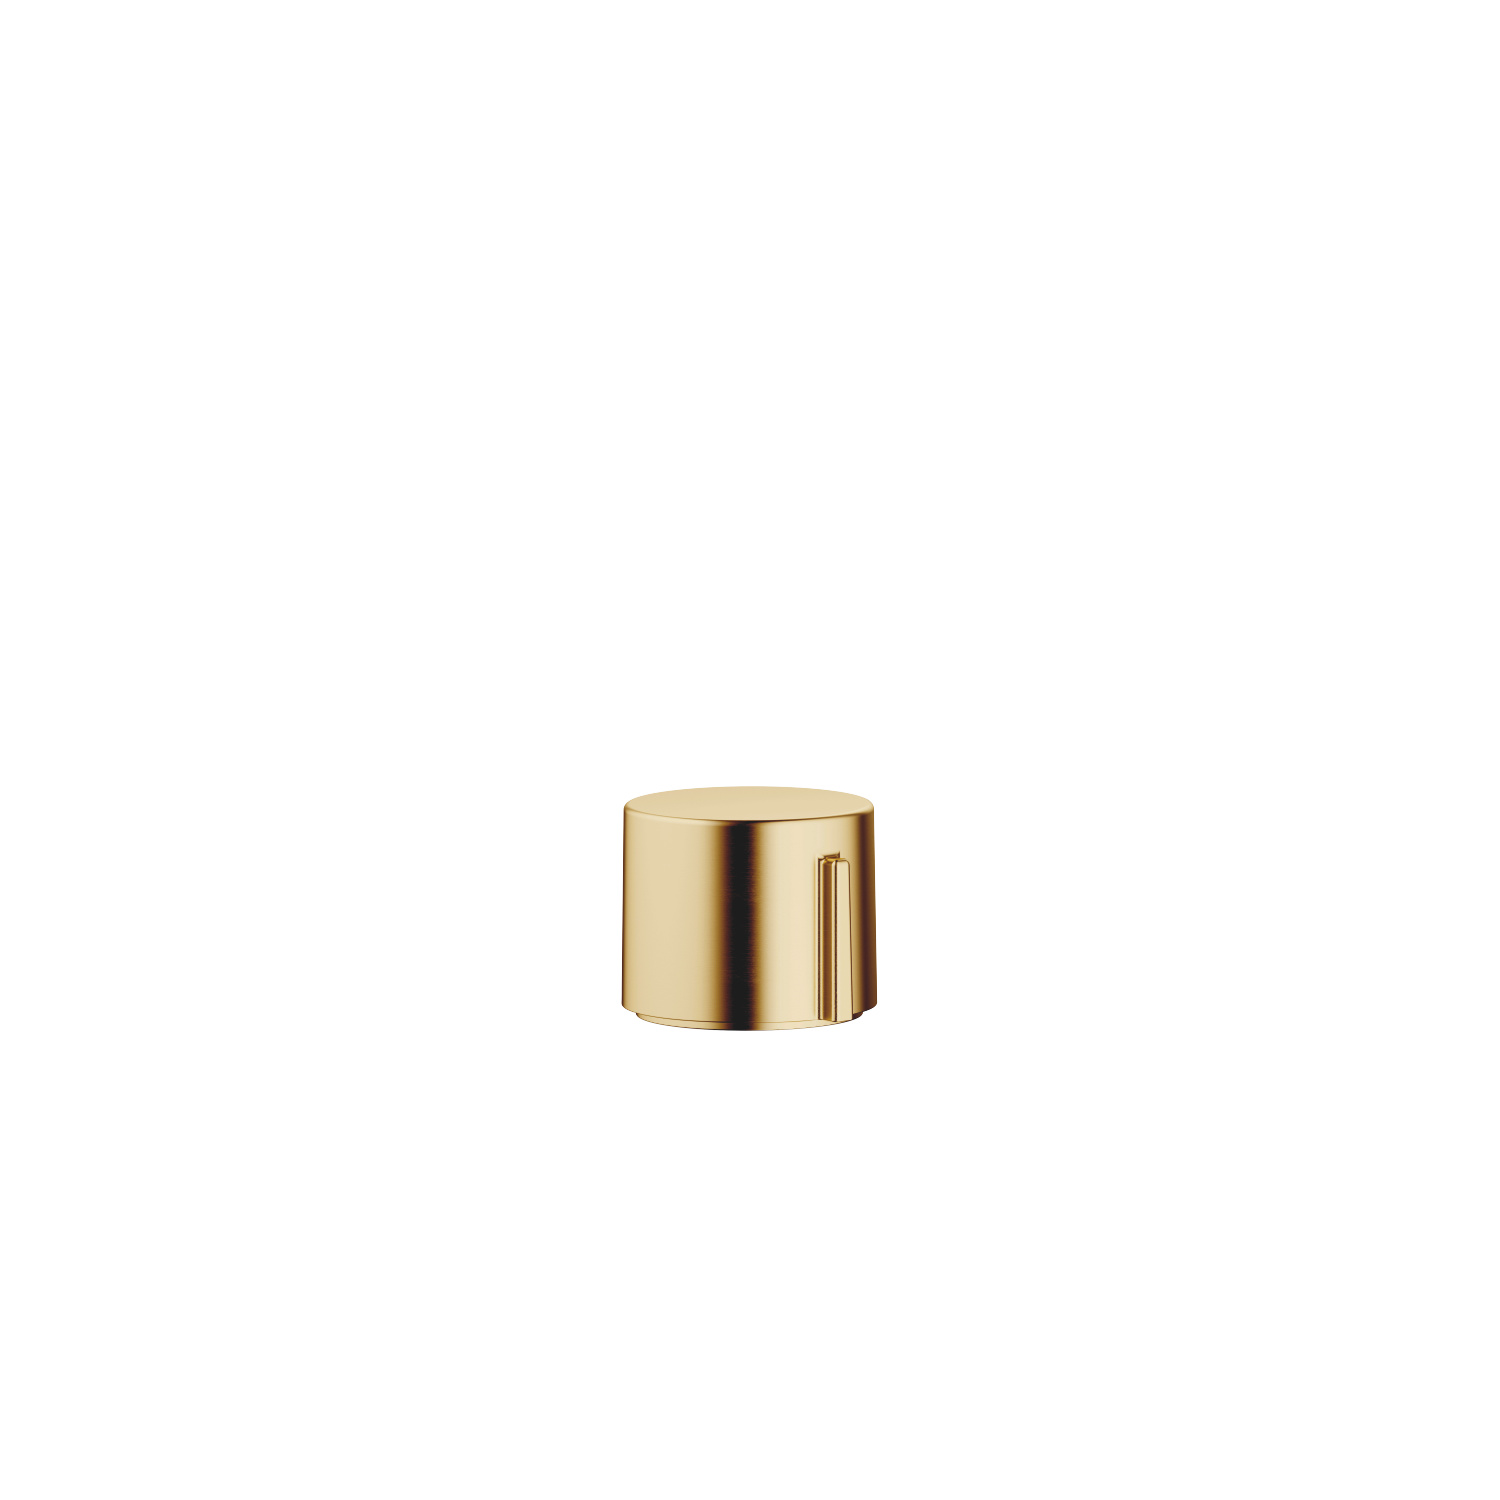 Strainer remote control with turning knob - Brushed Durabrass